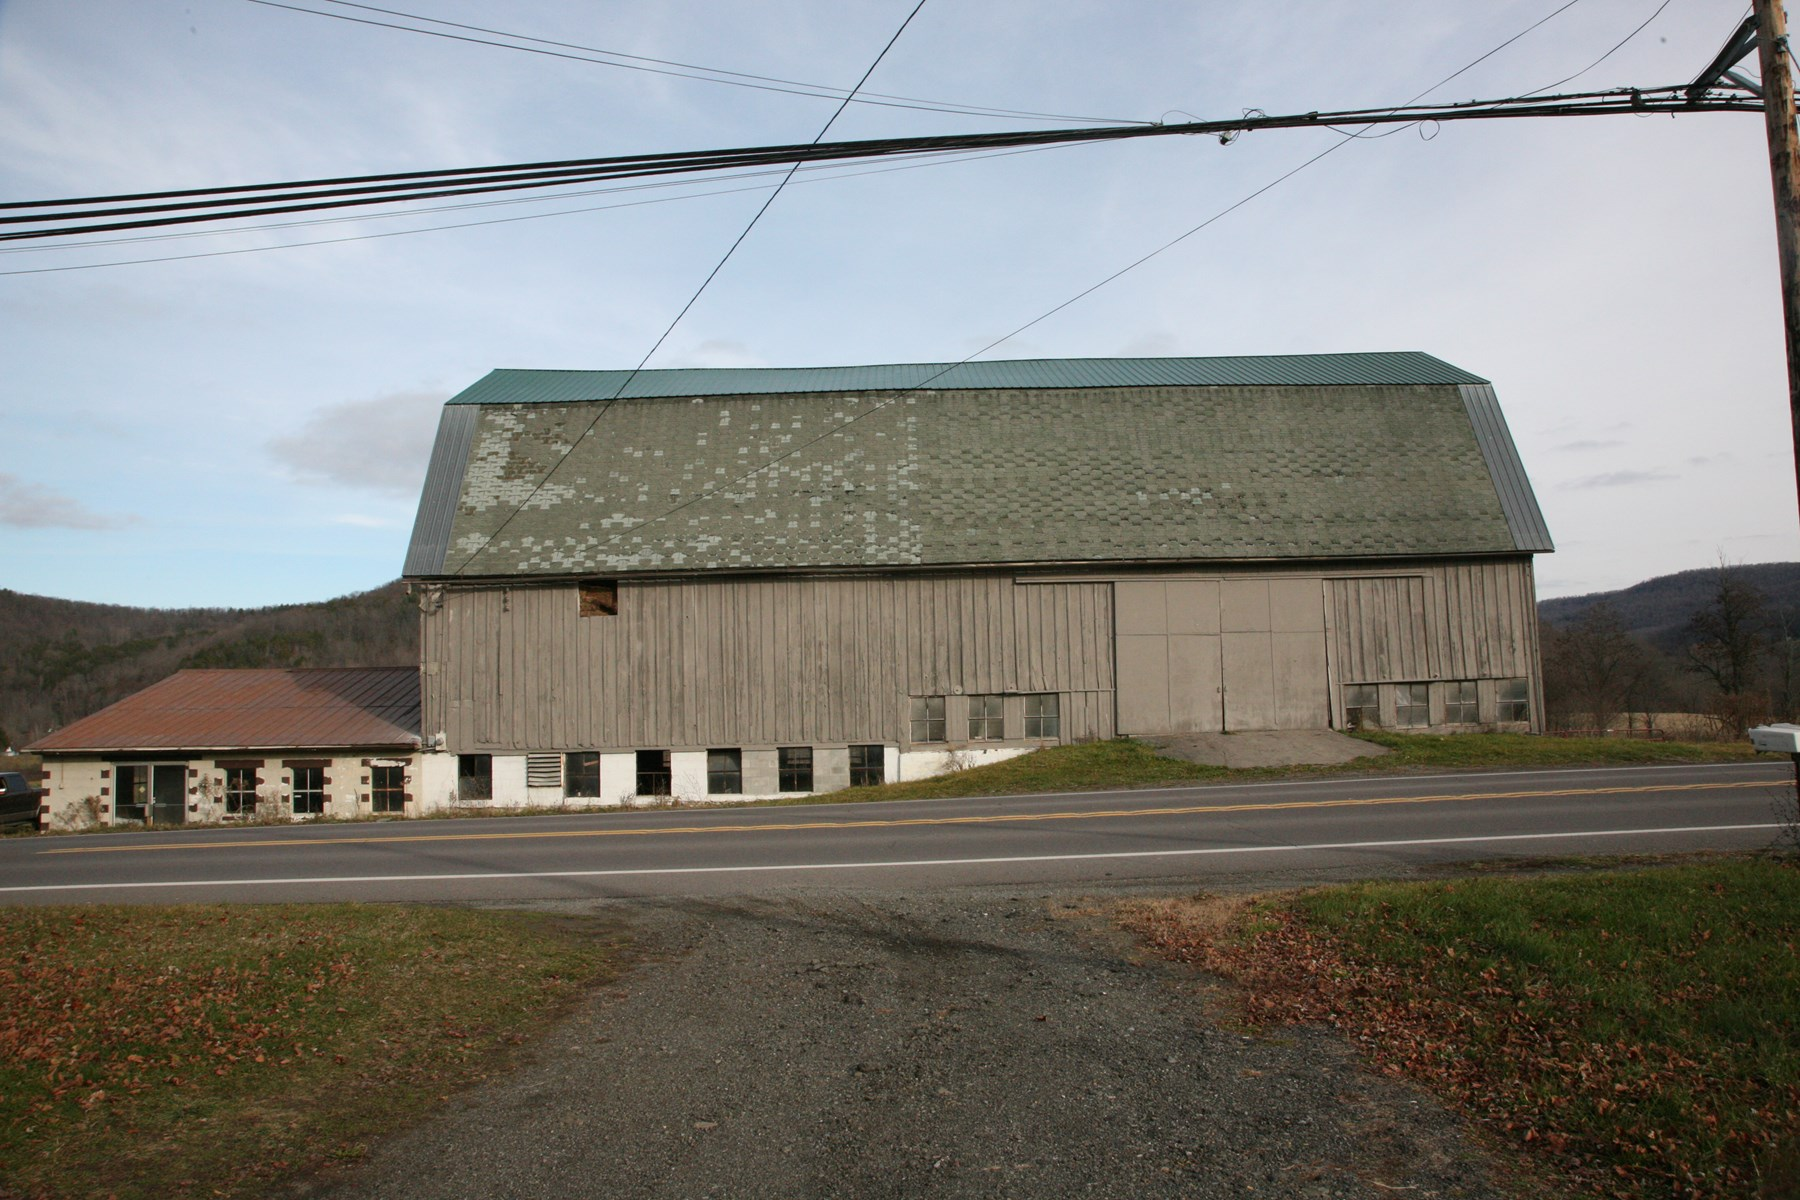 FAMILY FARM: BRADFORD COUNTY, PA - 114 ACRE GENERAL FARM